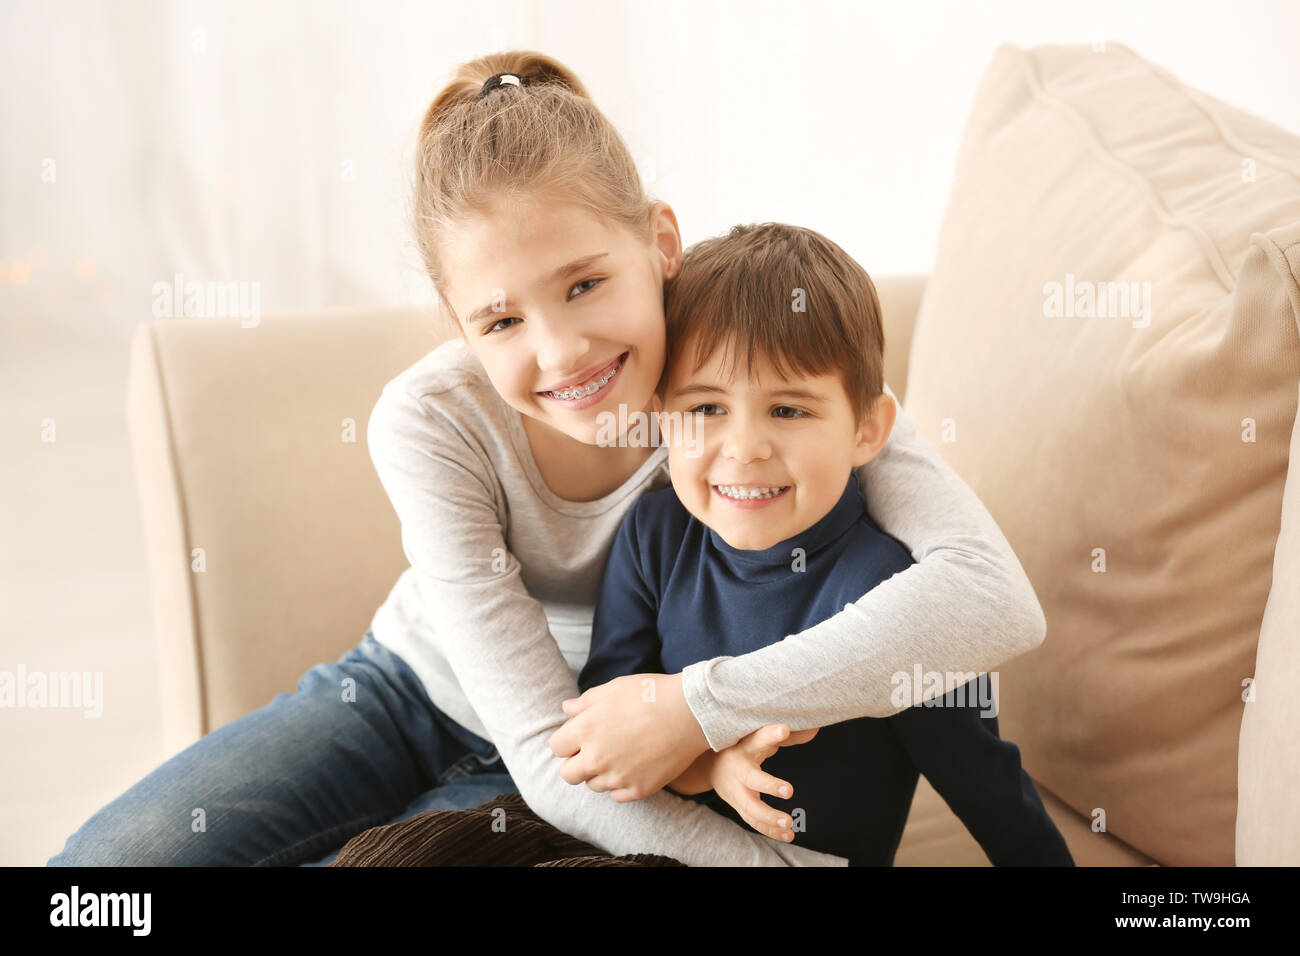 Portrait of cute little children at home - Stock Image